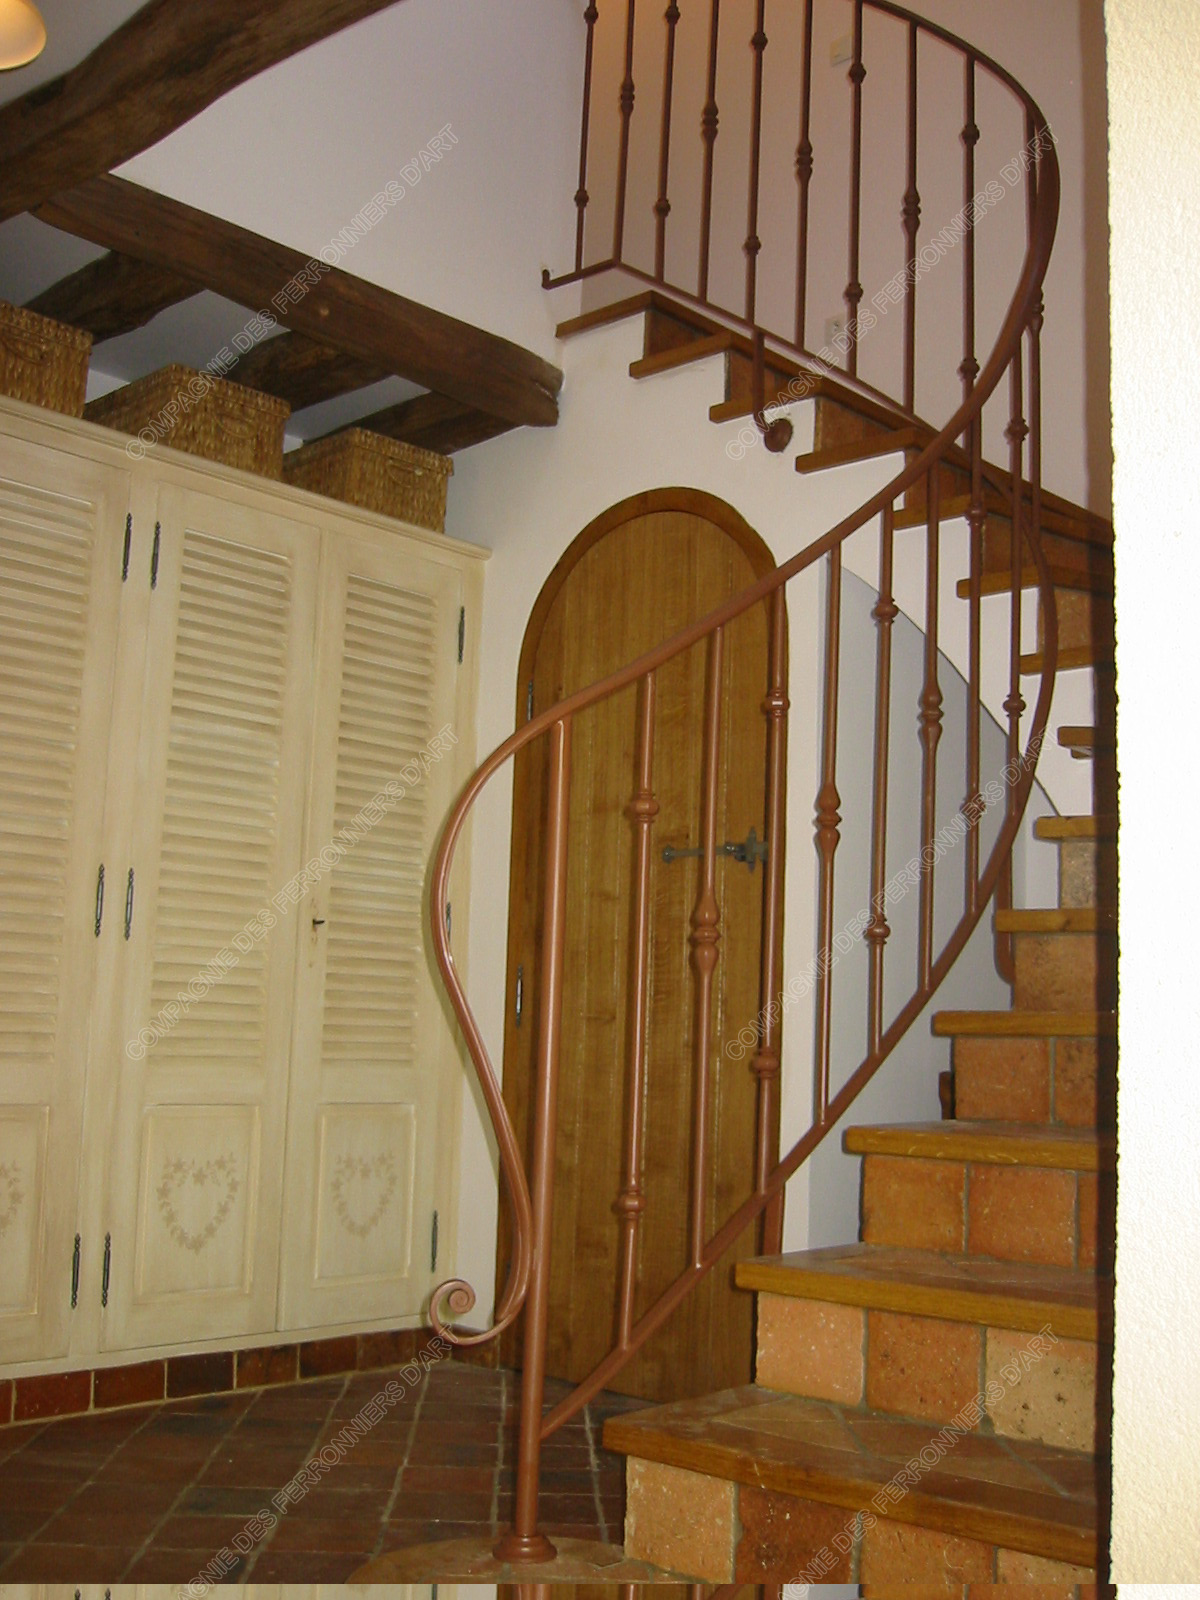 Rampes d 39 escalier en fer forg design fonctionnel mod le for Rampe d escalier lapeyre